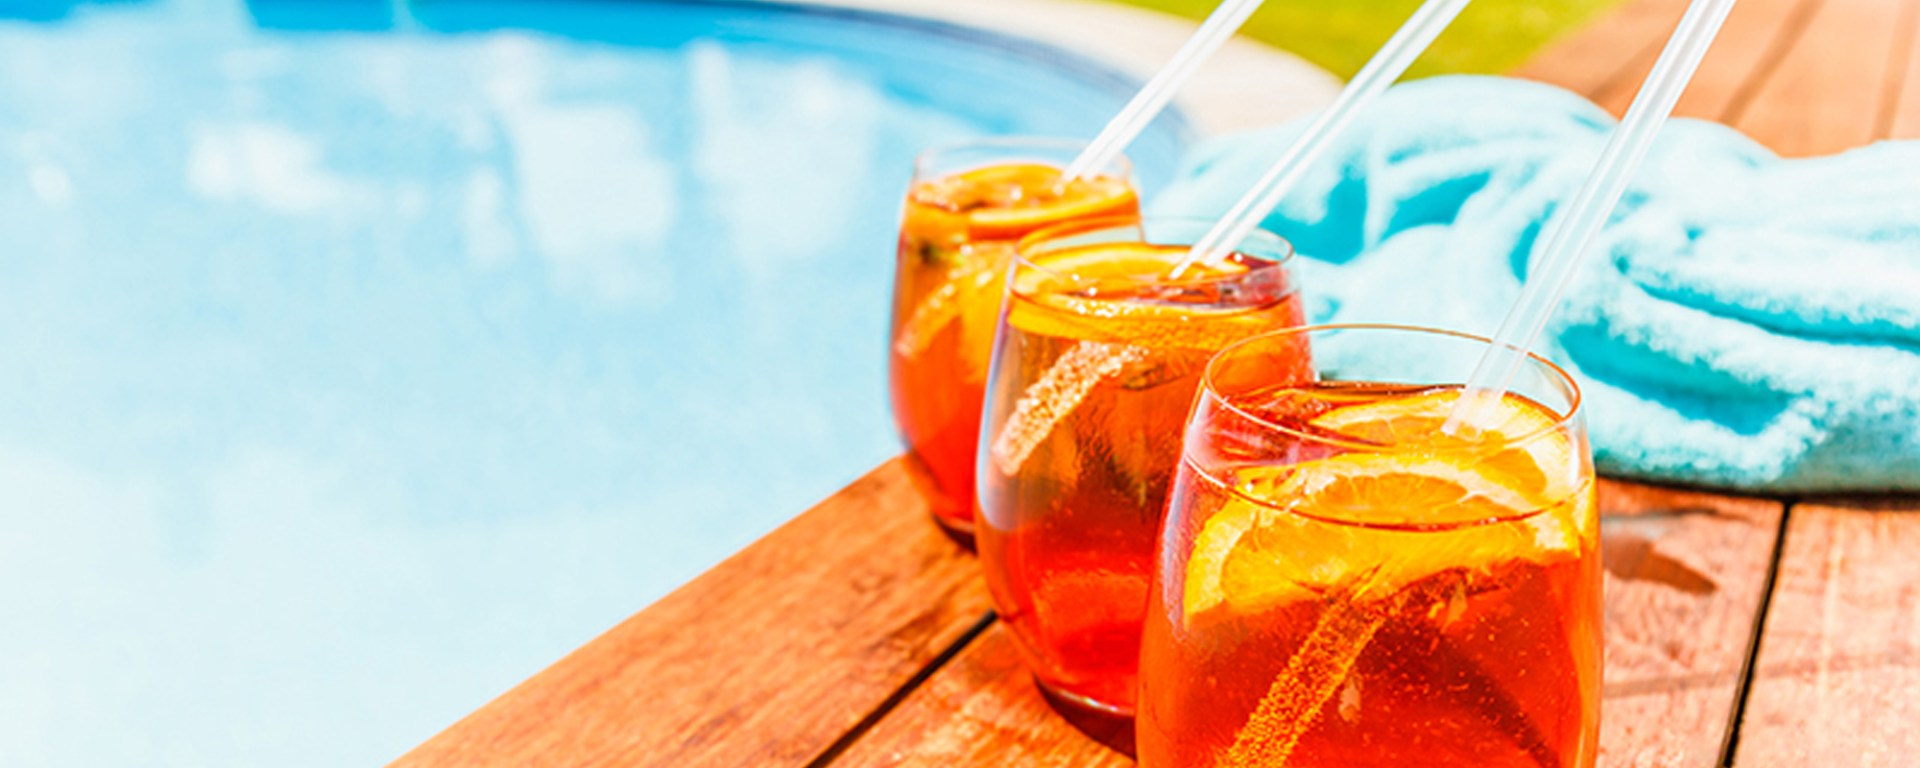 Drinks by the pool at outdoor bar patio